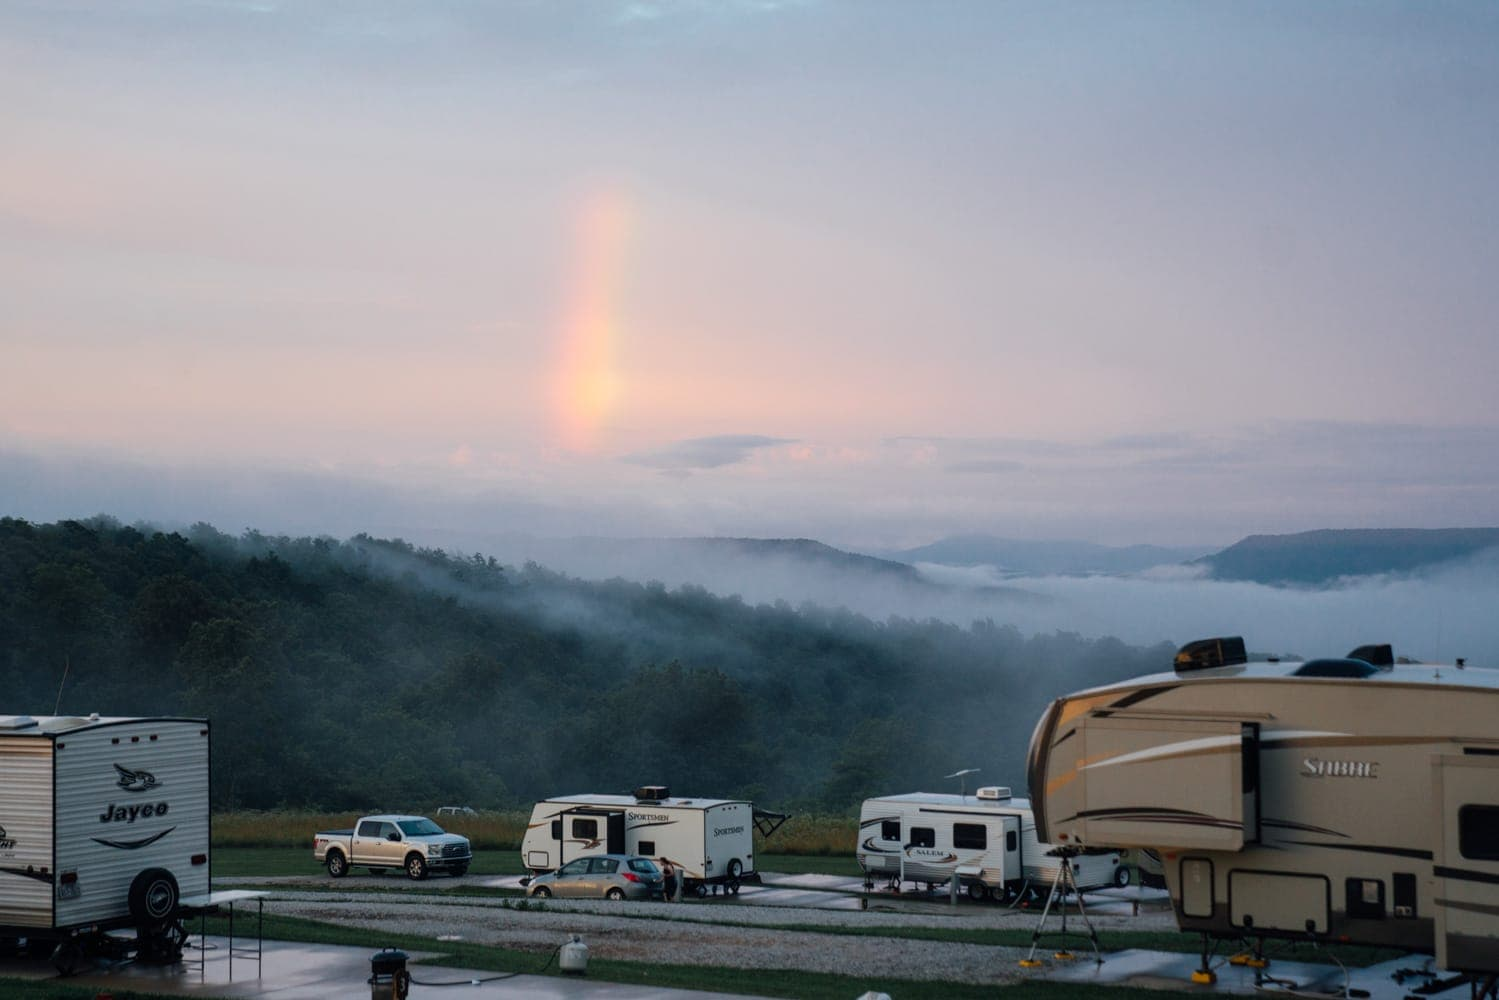 Enjoy beautiful skies at your RV's doorstep in our RV campground.